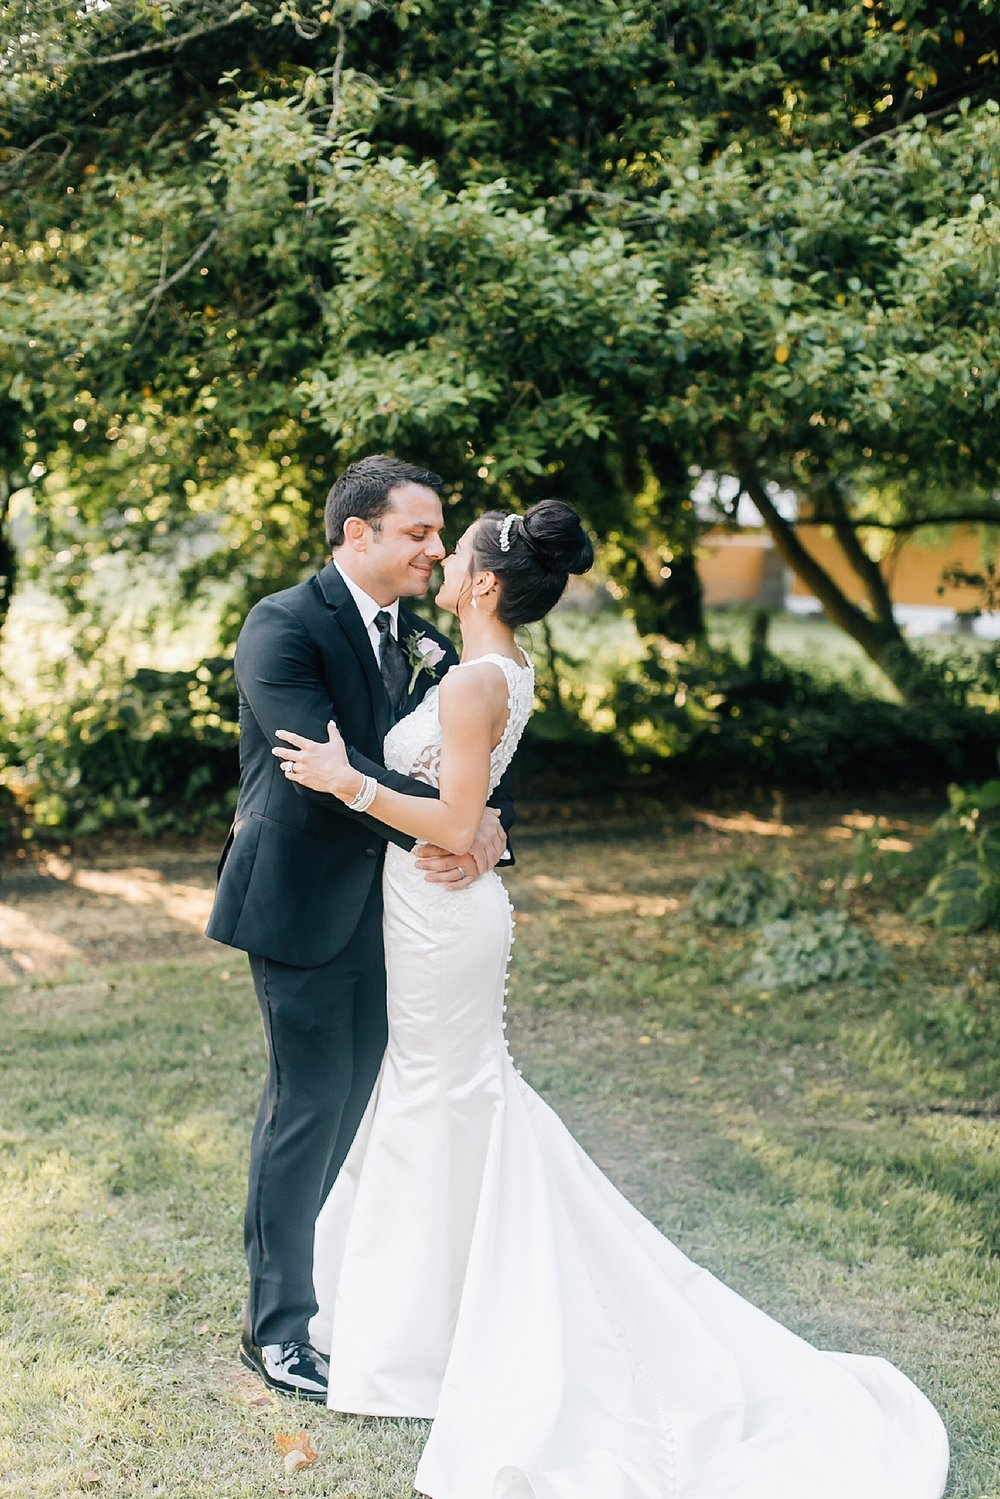 A Romantic Summer Wedding at Willow Creek Winery in Cape May, NJ by Magdalena Studios_0039.jpg